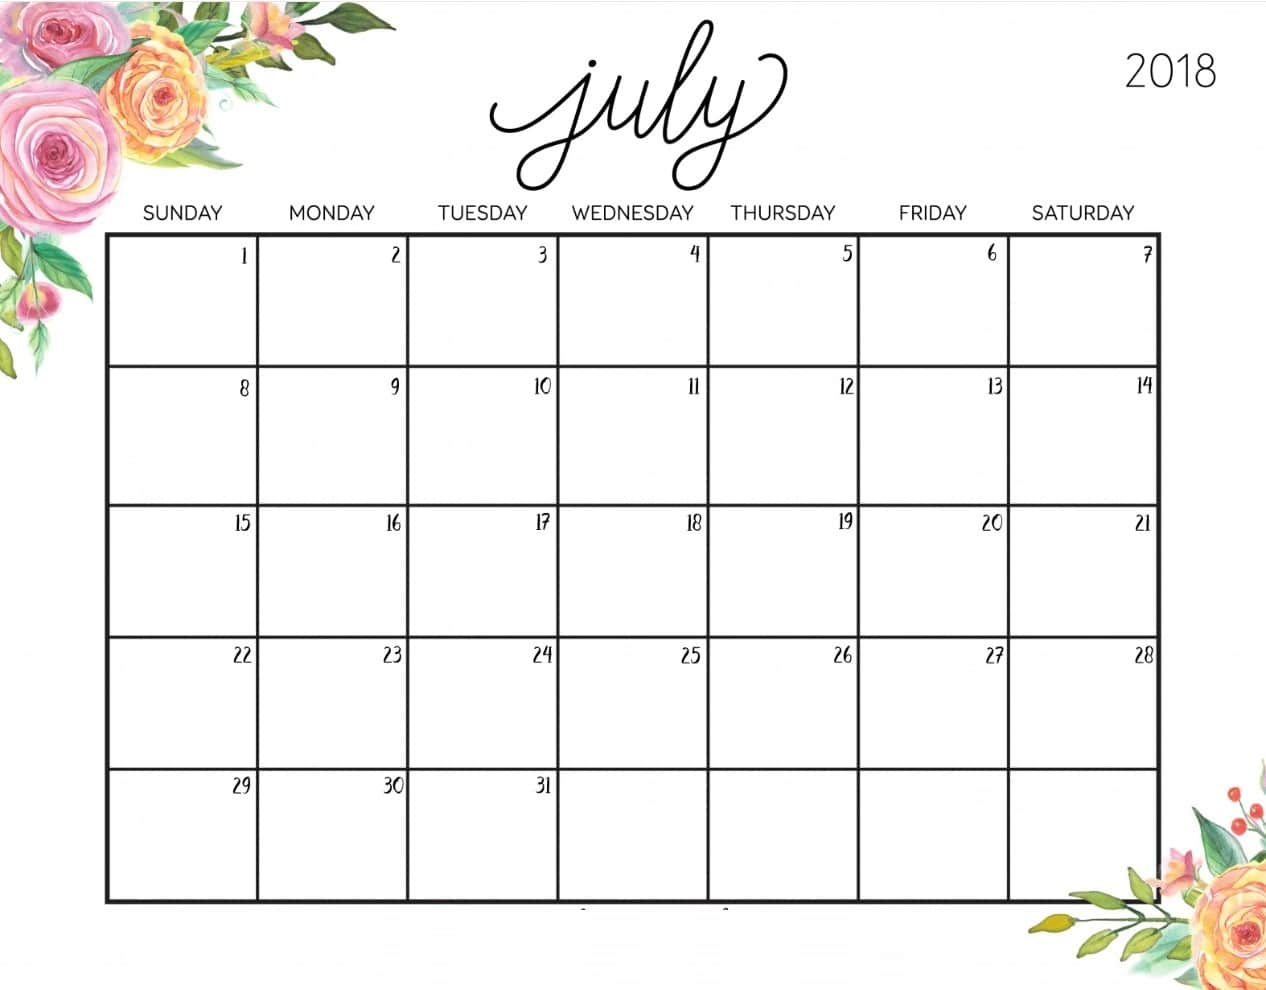 picture relating to Calendar July Printable named July 2018 Calendar Printable Adorable Quotation Pics High definition Free of charge